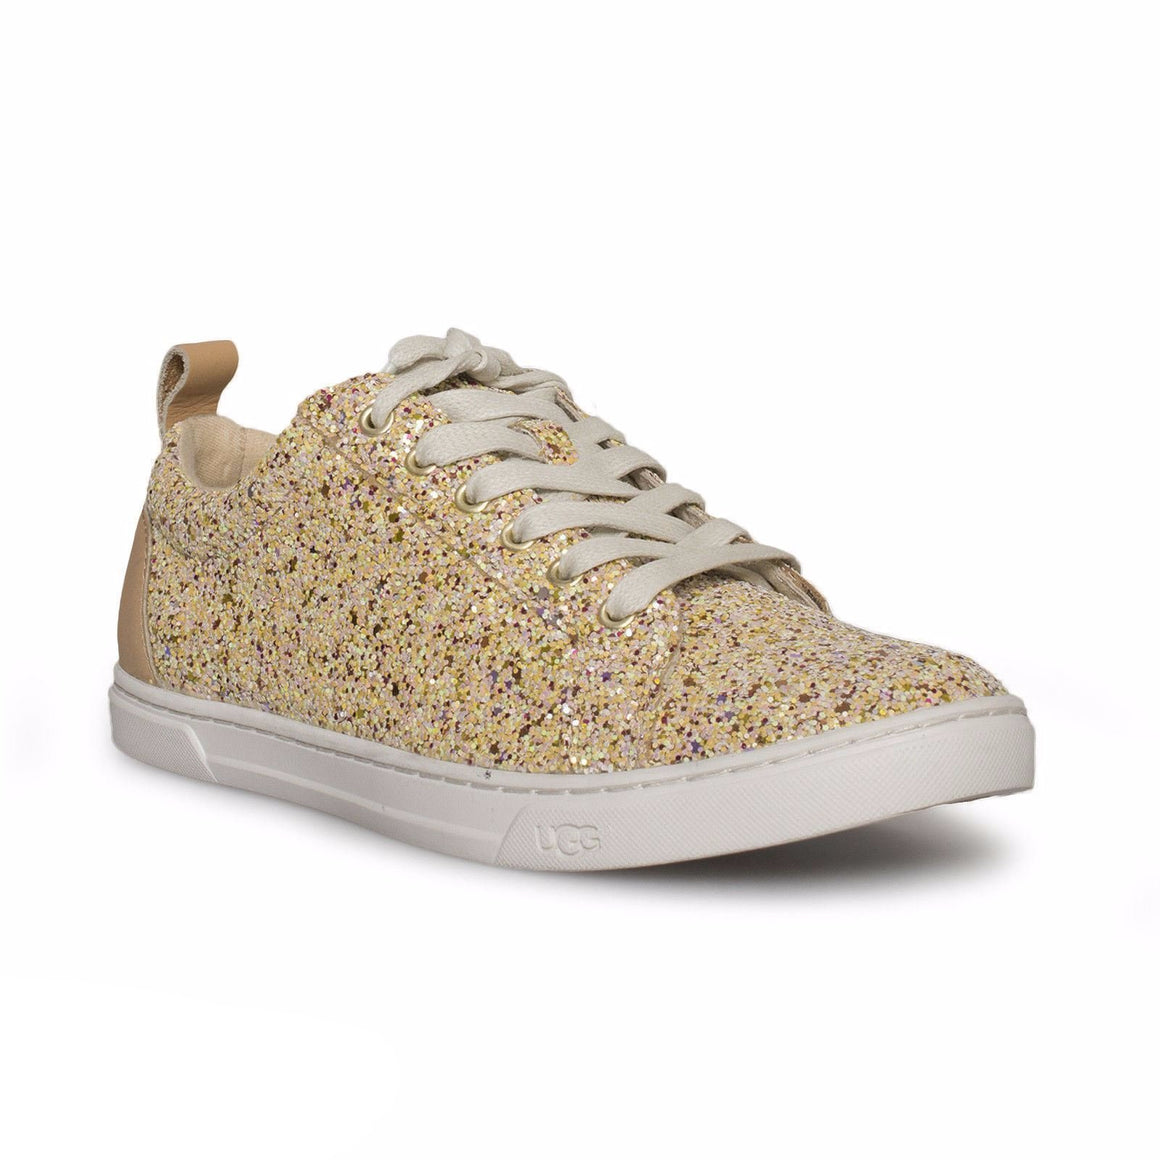 UGG Karine Chunky Glitter Gold Multi Shoes